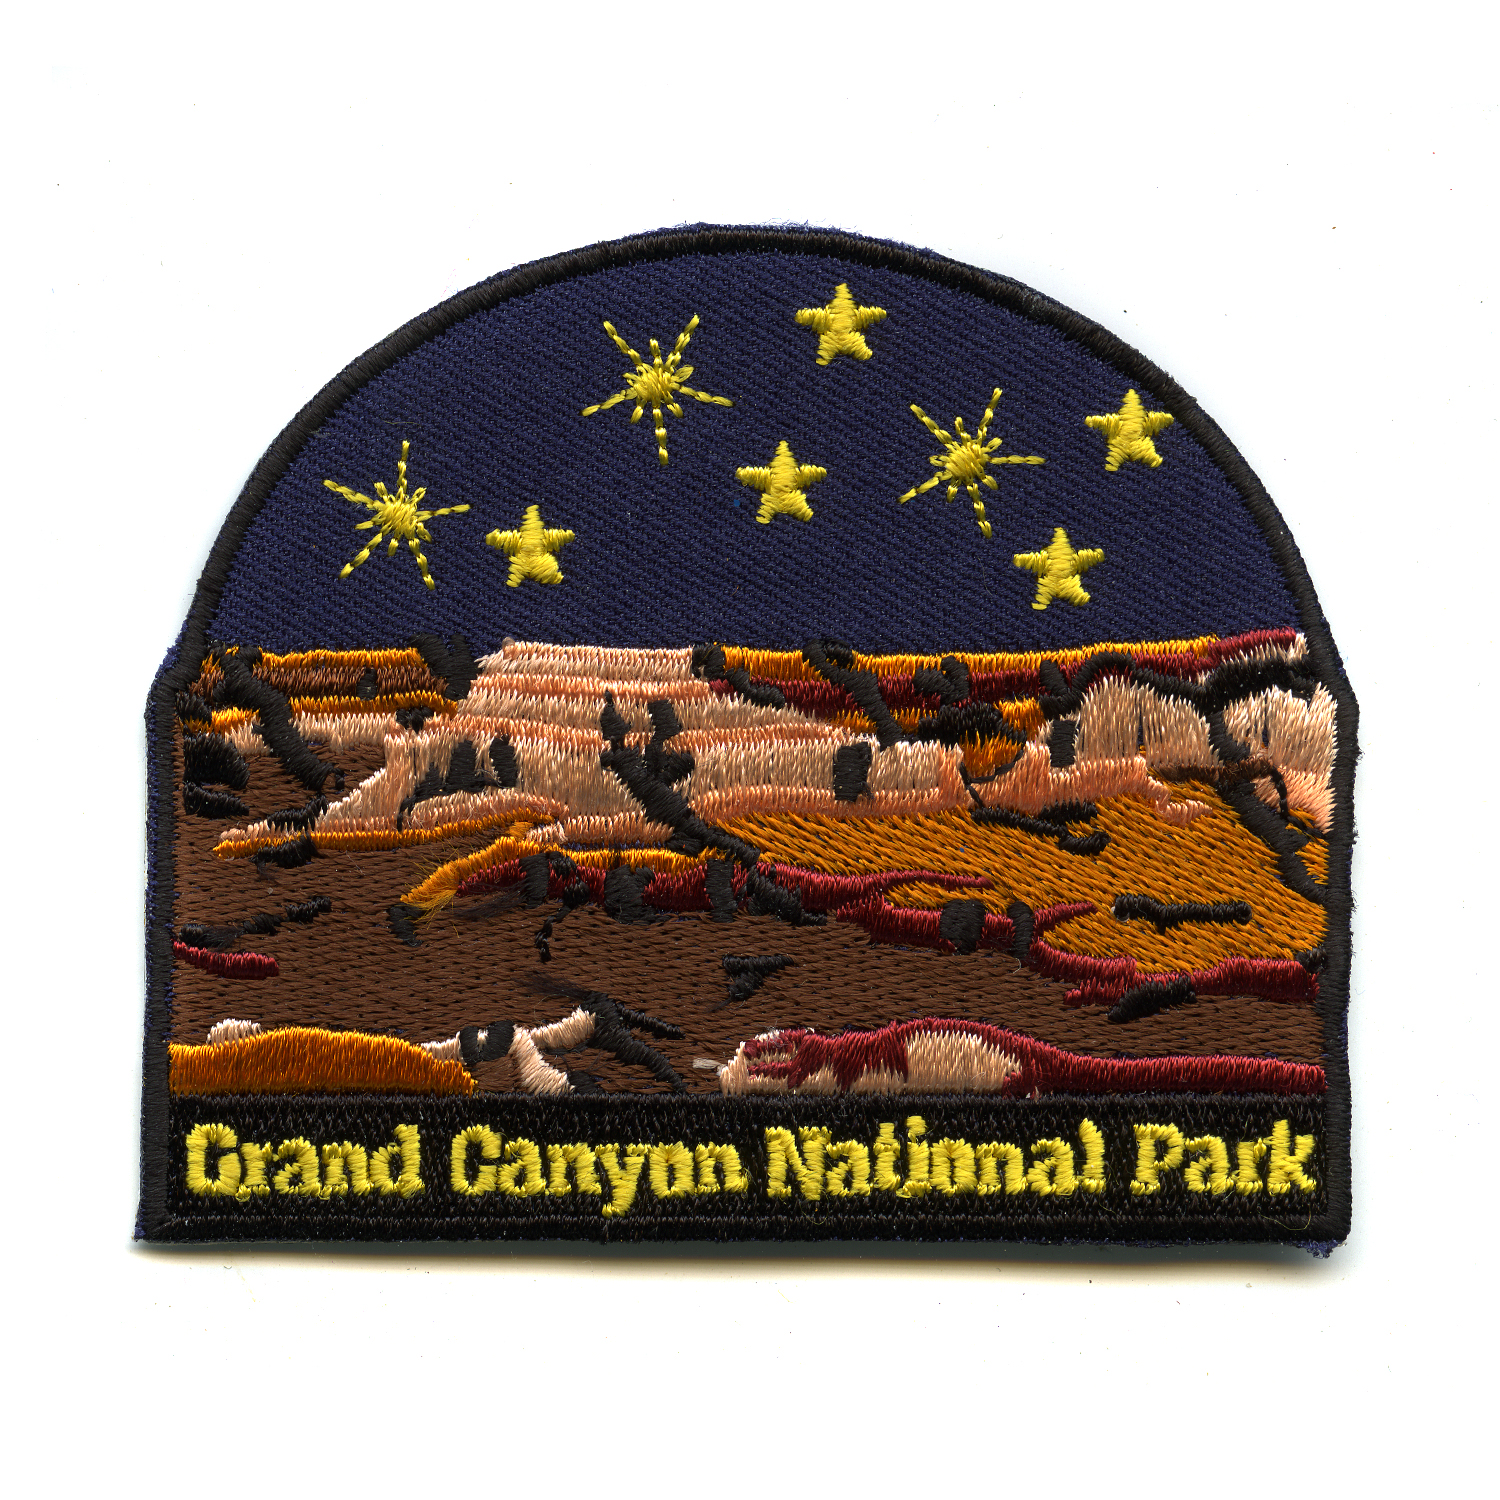 nps_patch_project_grand_canyon_national_park_patch_2.jpg